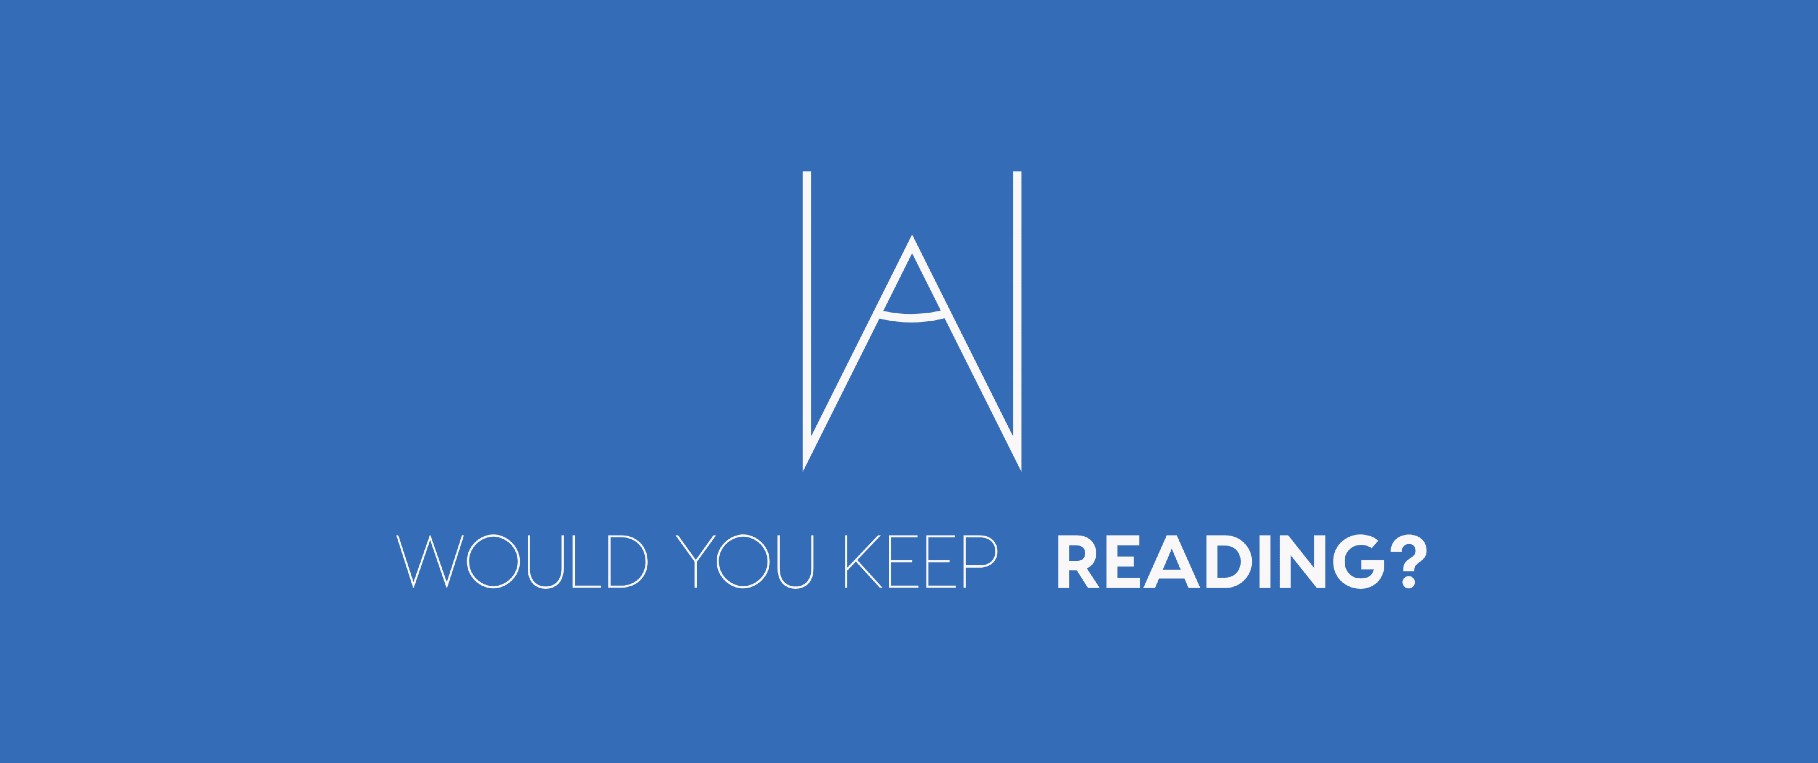 Would You Keep Reading?